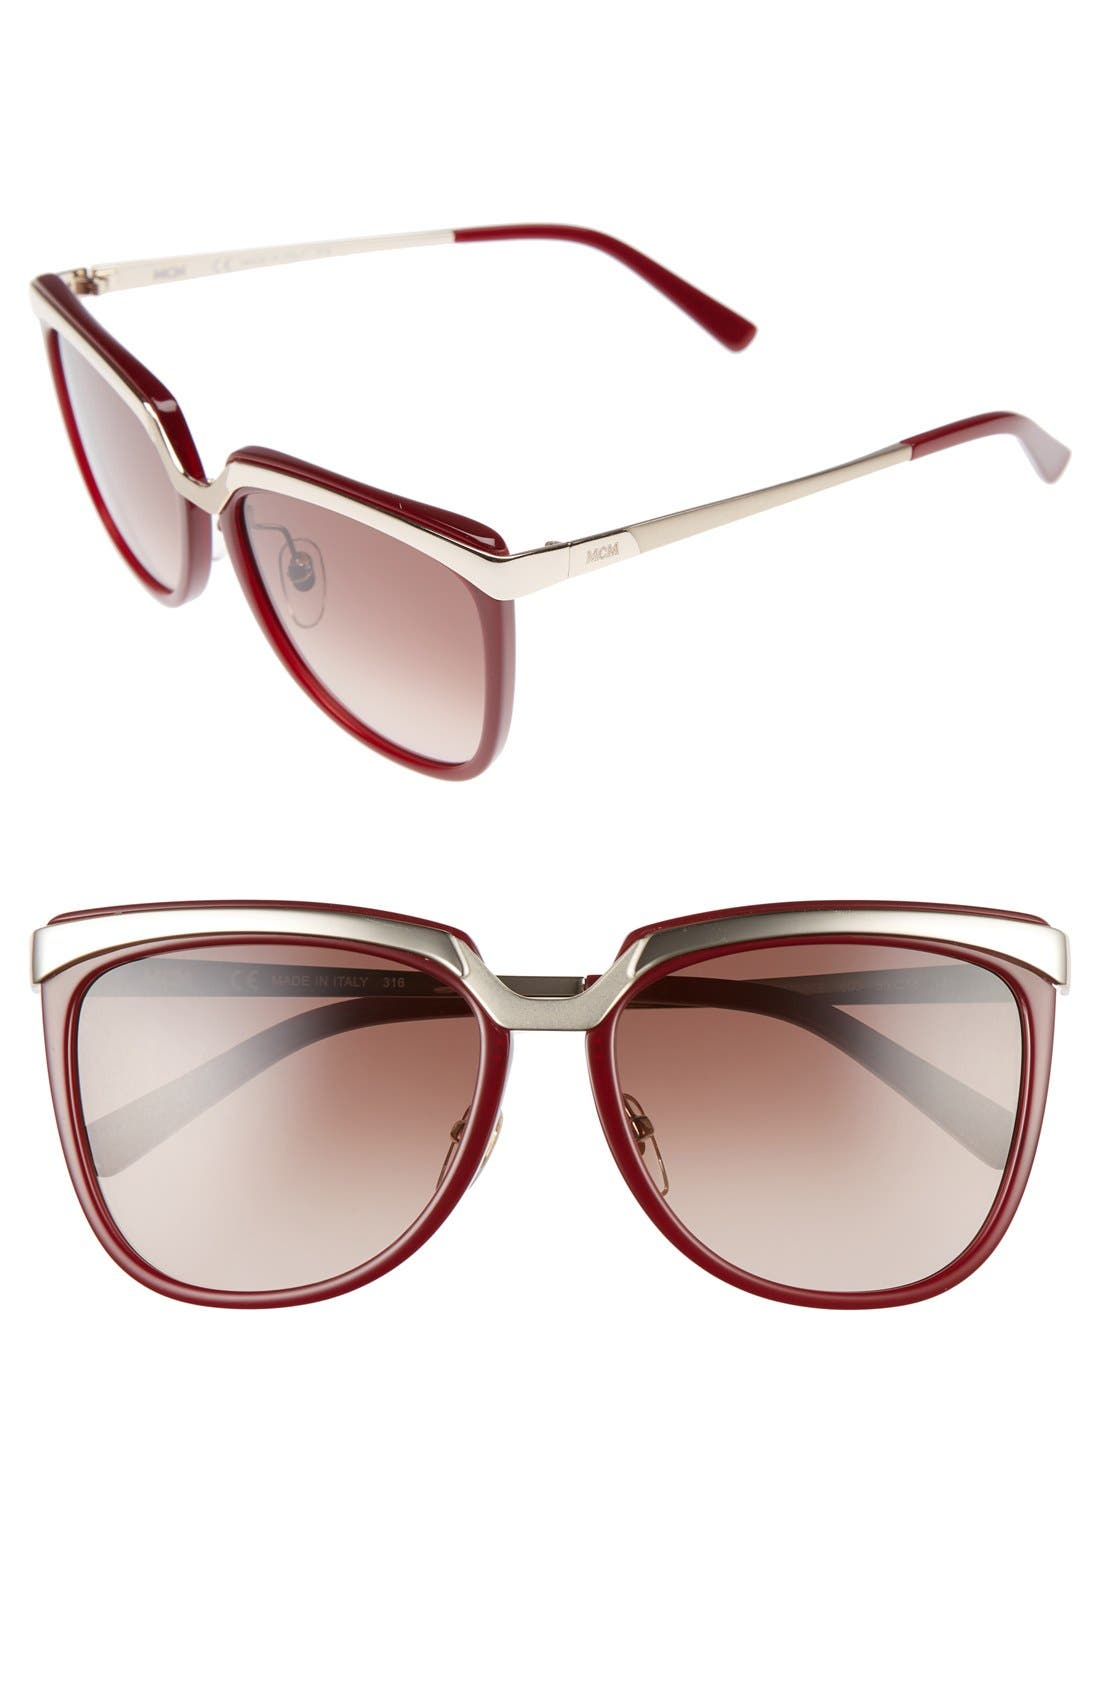 MCM Teacup 55mm Sunglasses